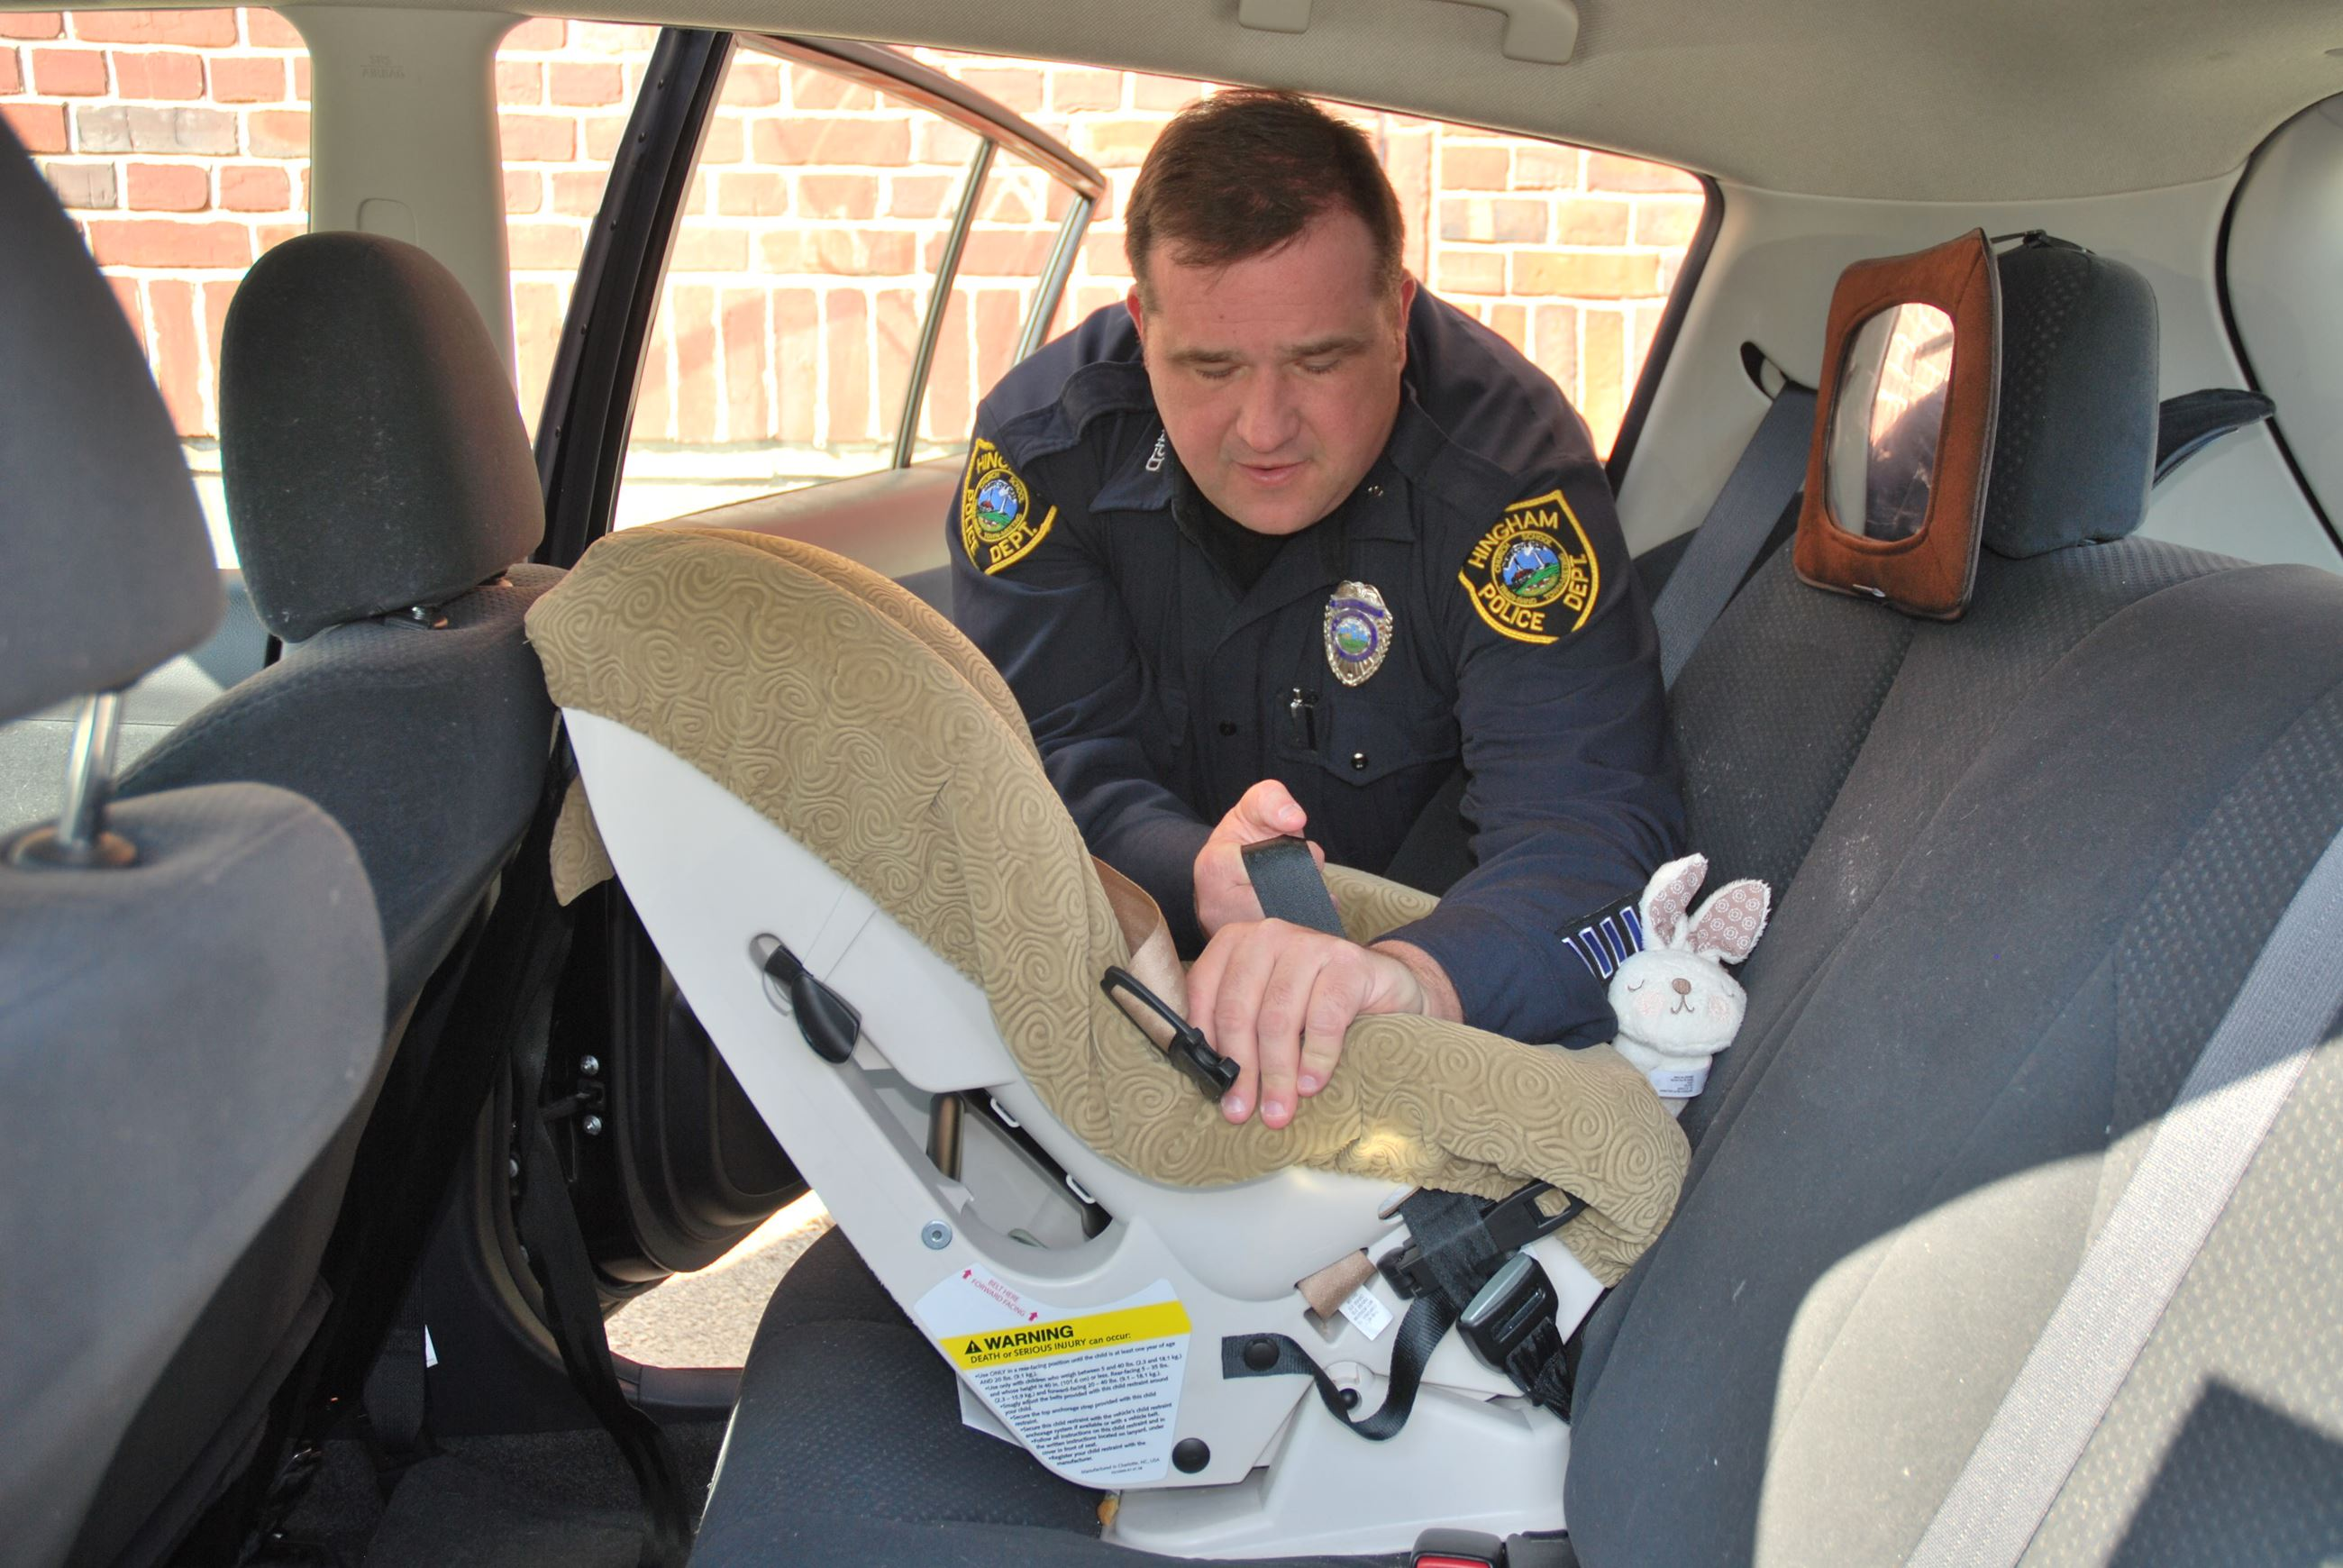 child car seat installation hingham police department ma. Black Bedroom Furniture Sets. Home Design Ideas